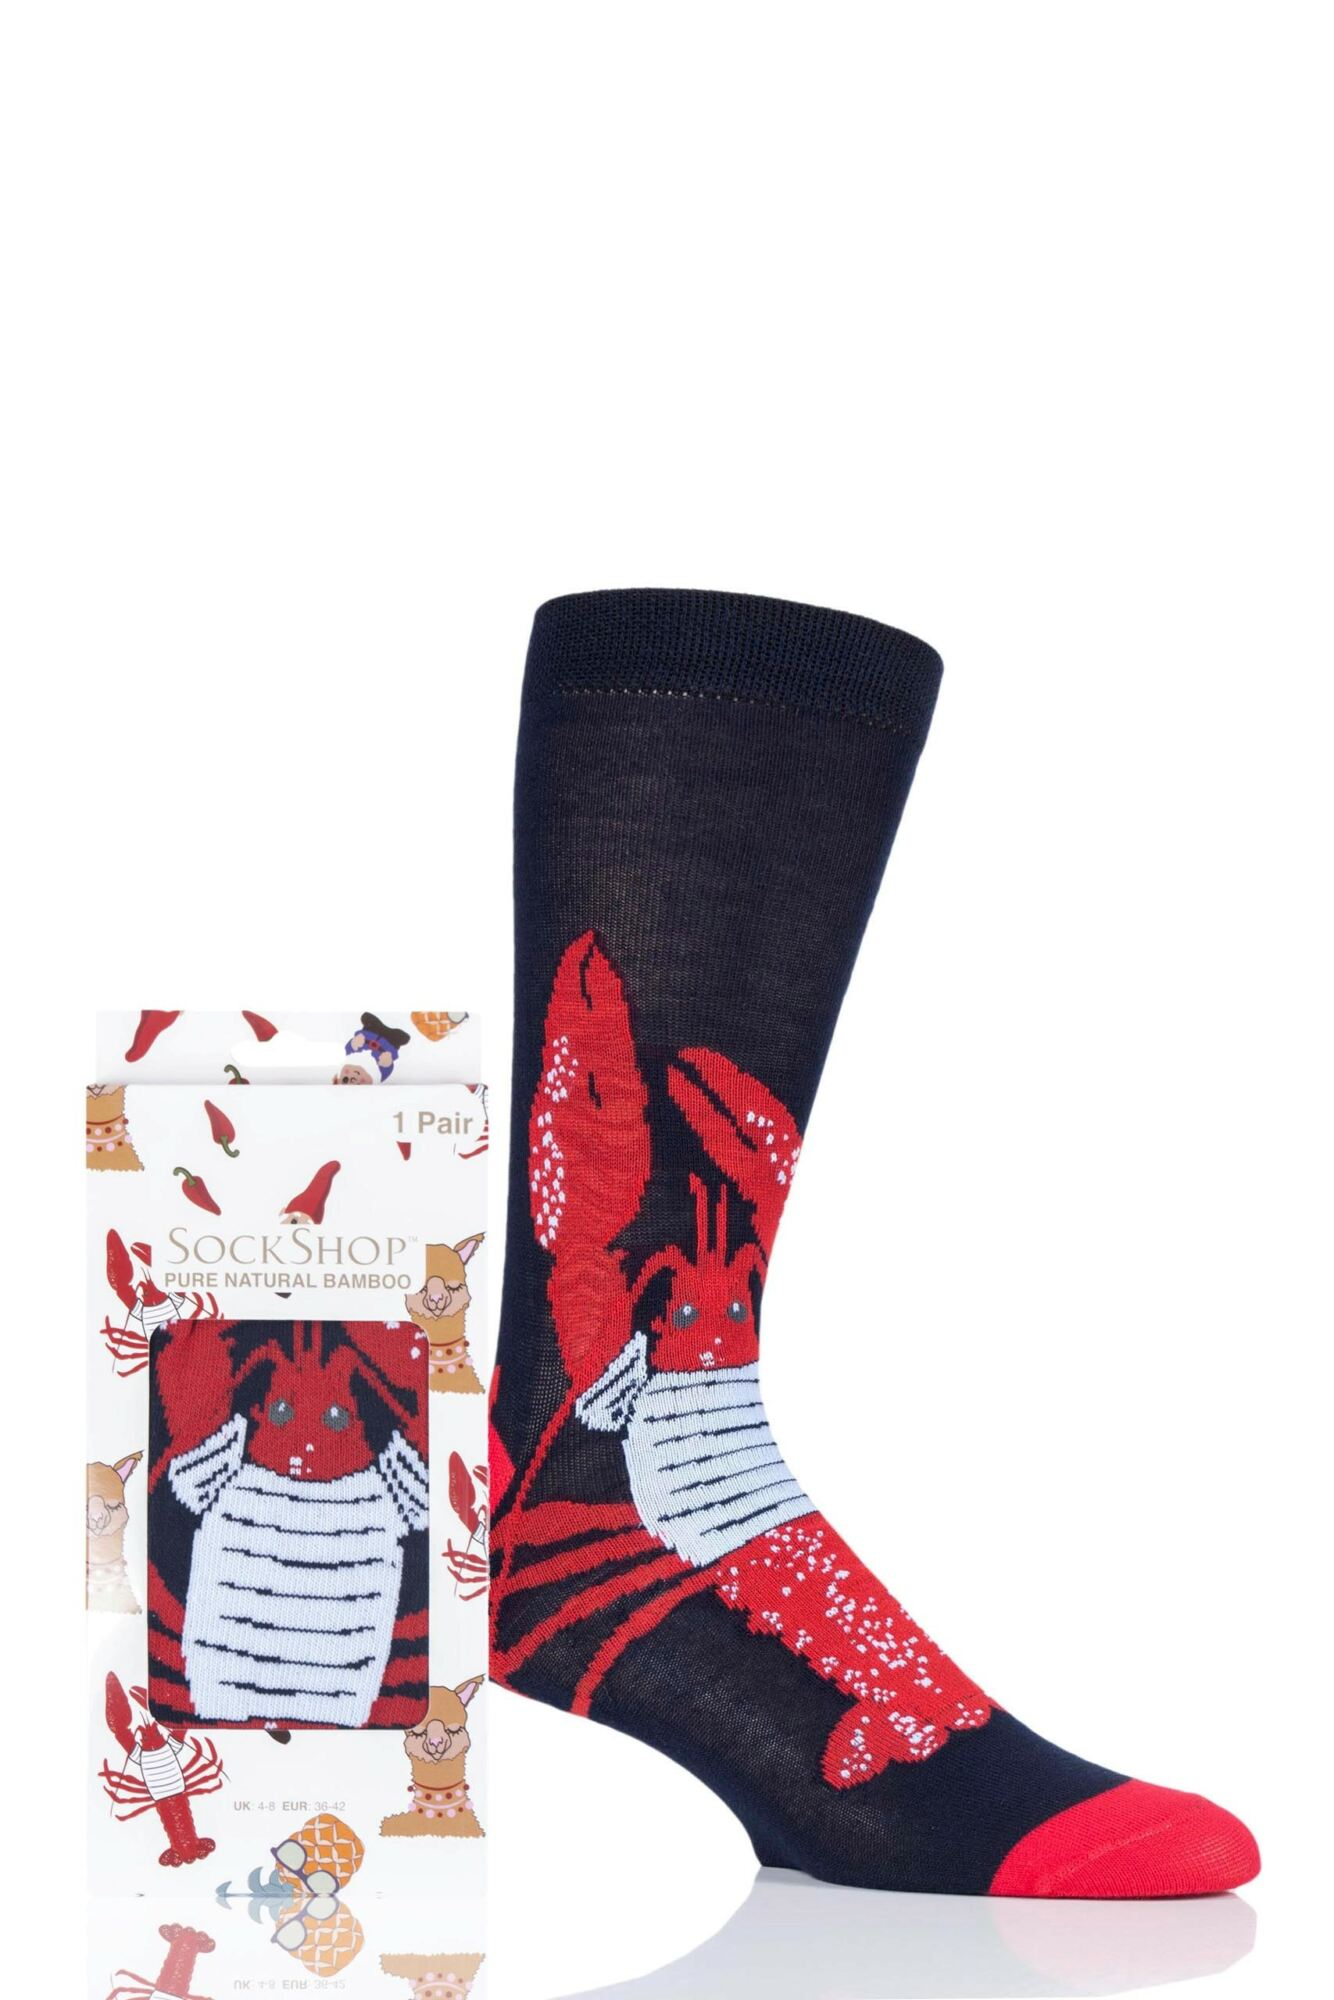 1 Pair Bamboo Lobster Gift Boxed Socks Unisex - Lazy Panda